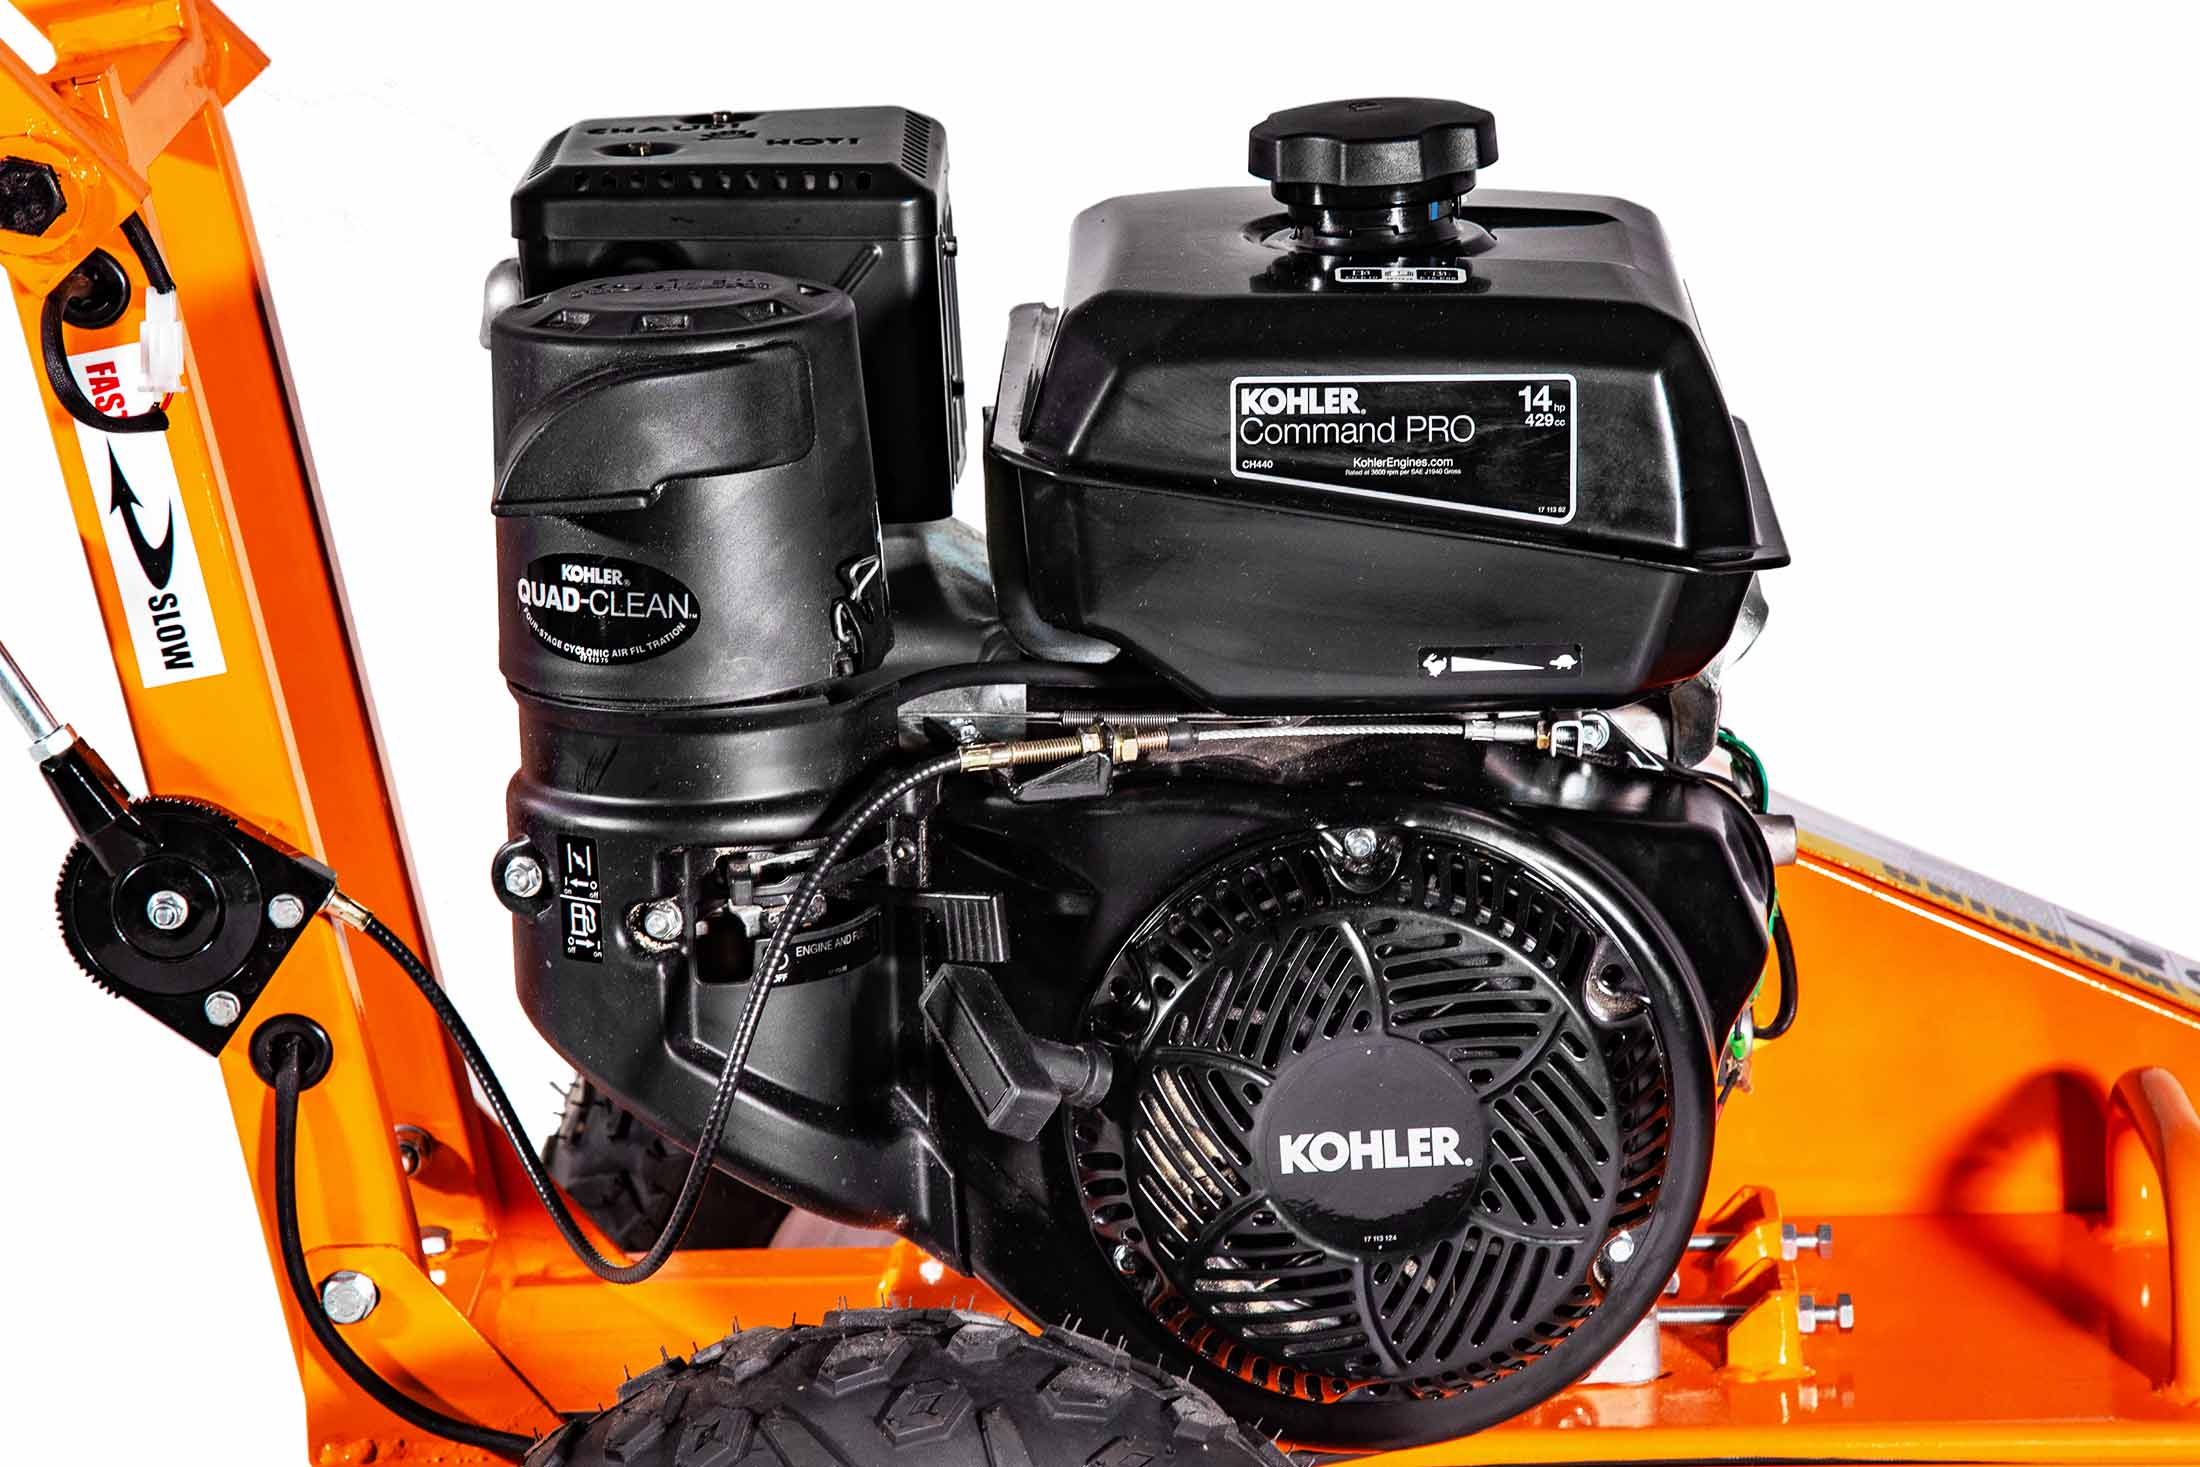 FEATURING KOHLER COMMAND PRO ENGINES -